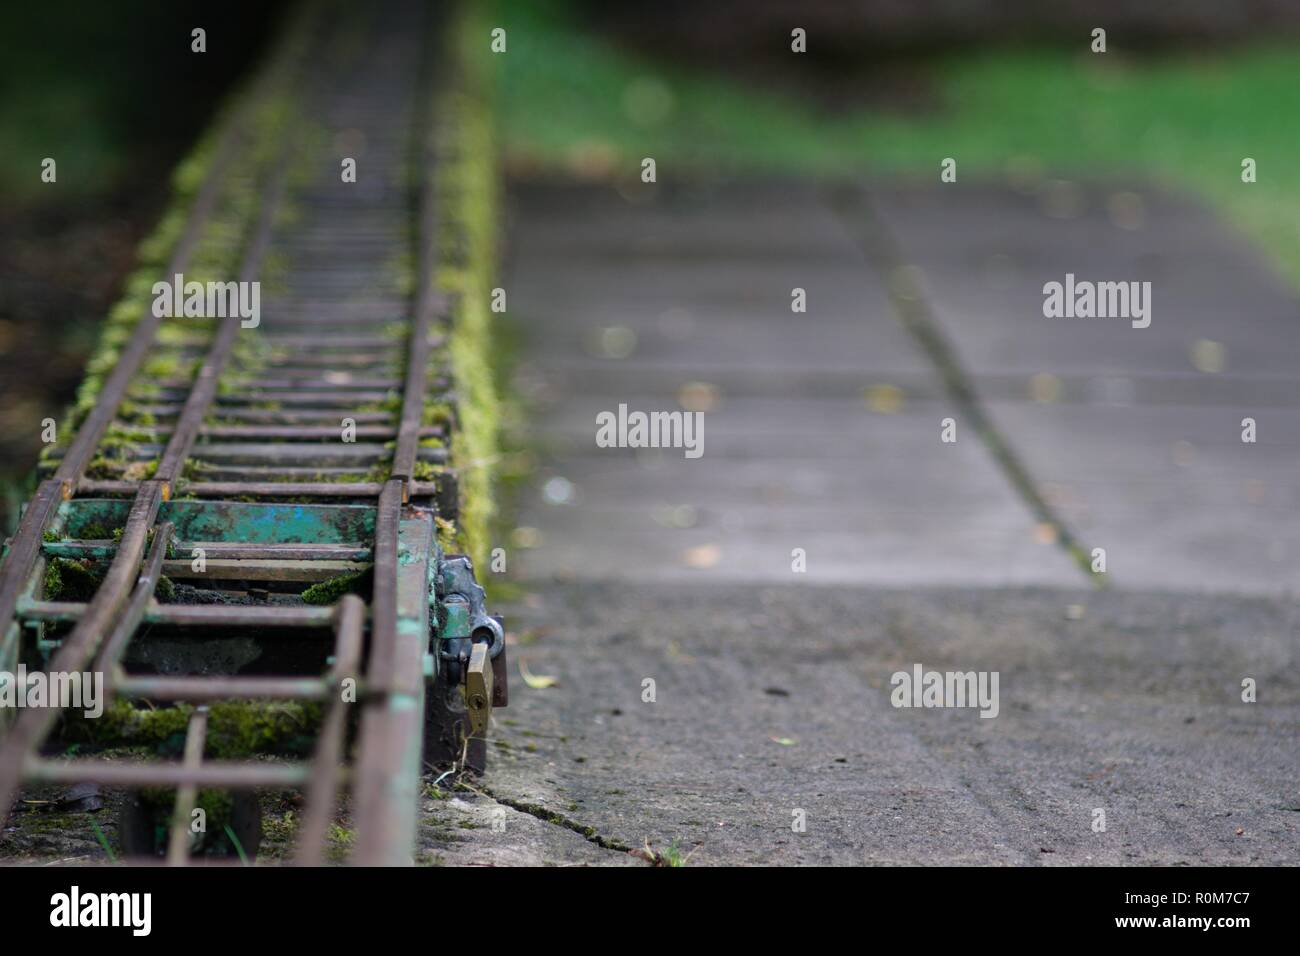 A small train track, padlock and patio area at Tintern Abbey - Stock Image